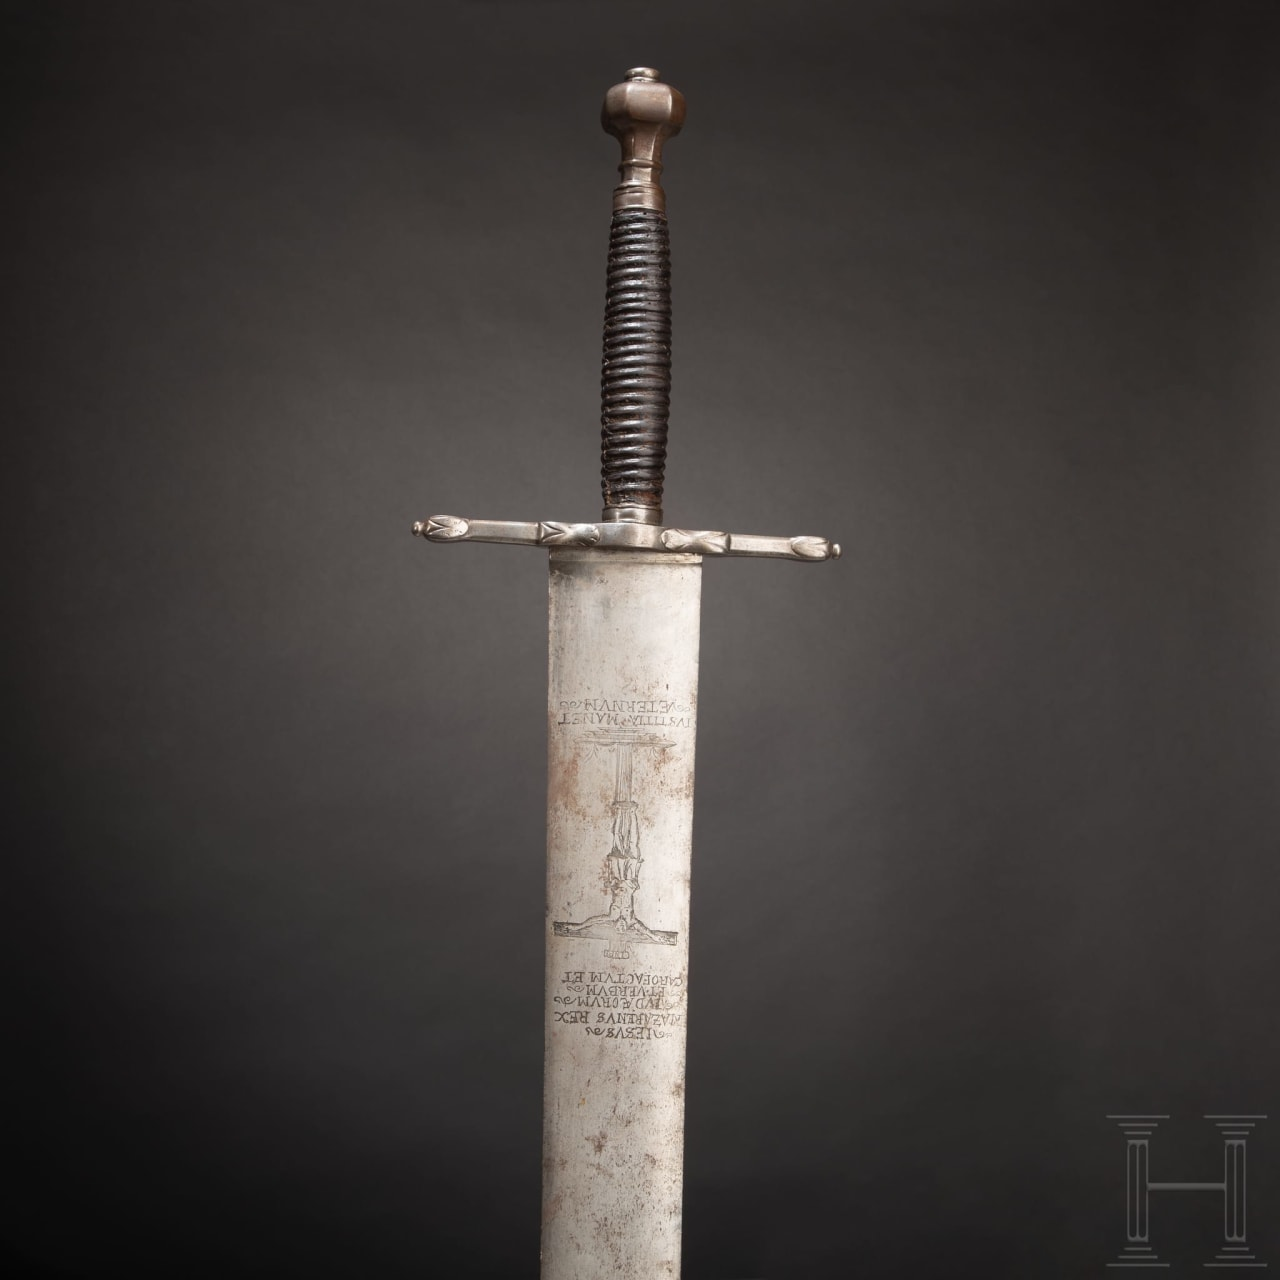 A German executioner's sword, 17th century